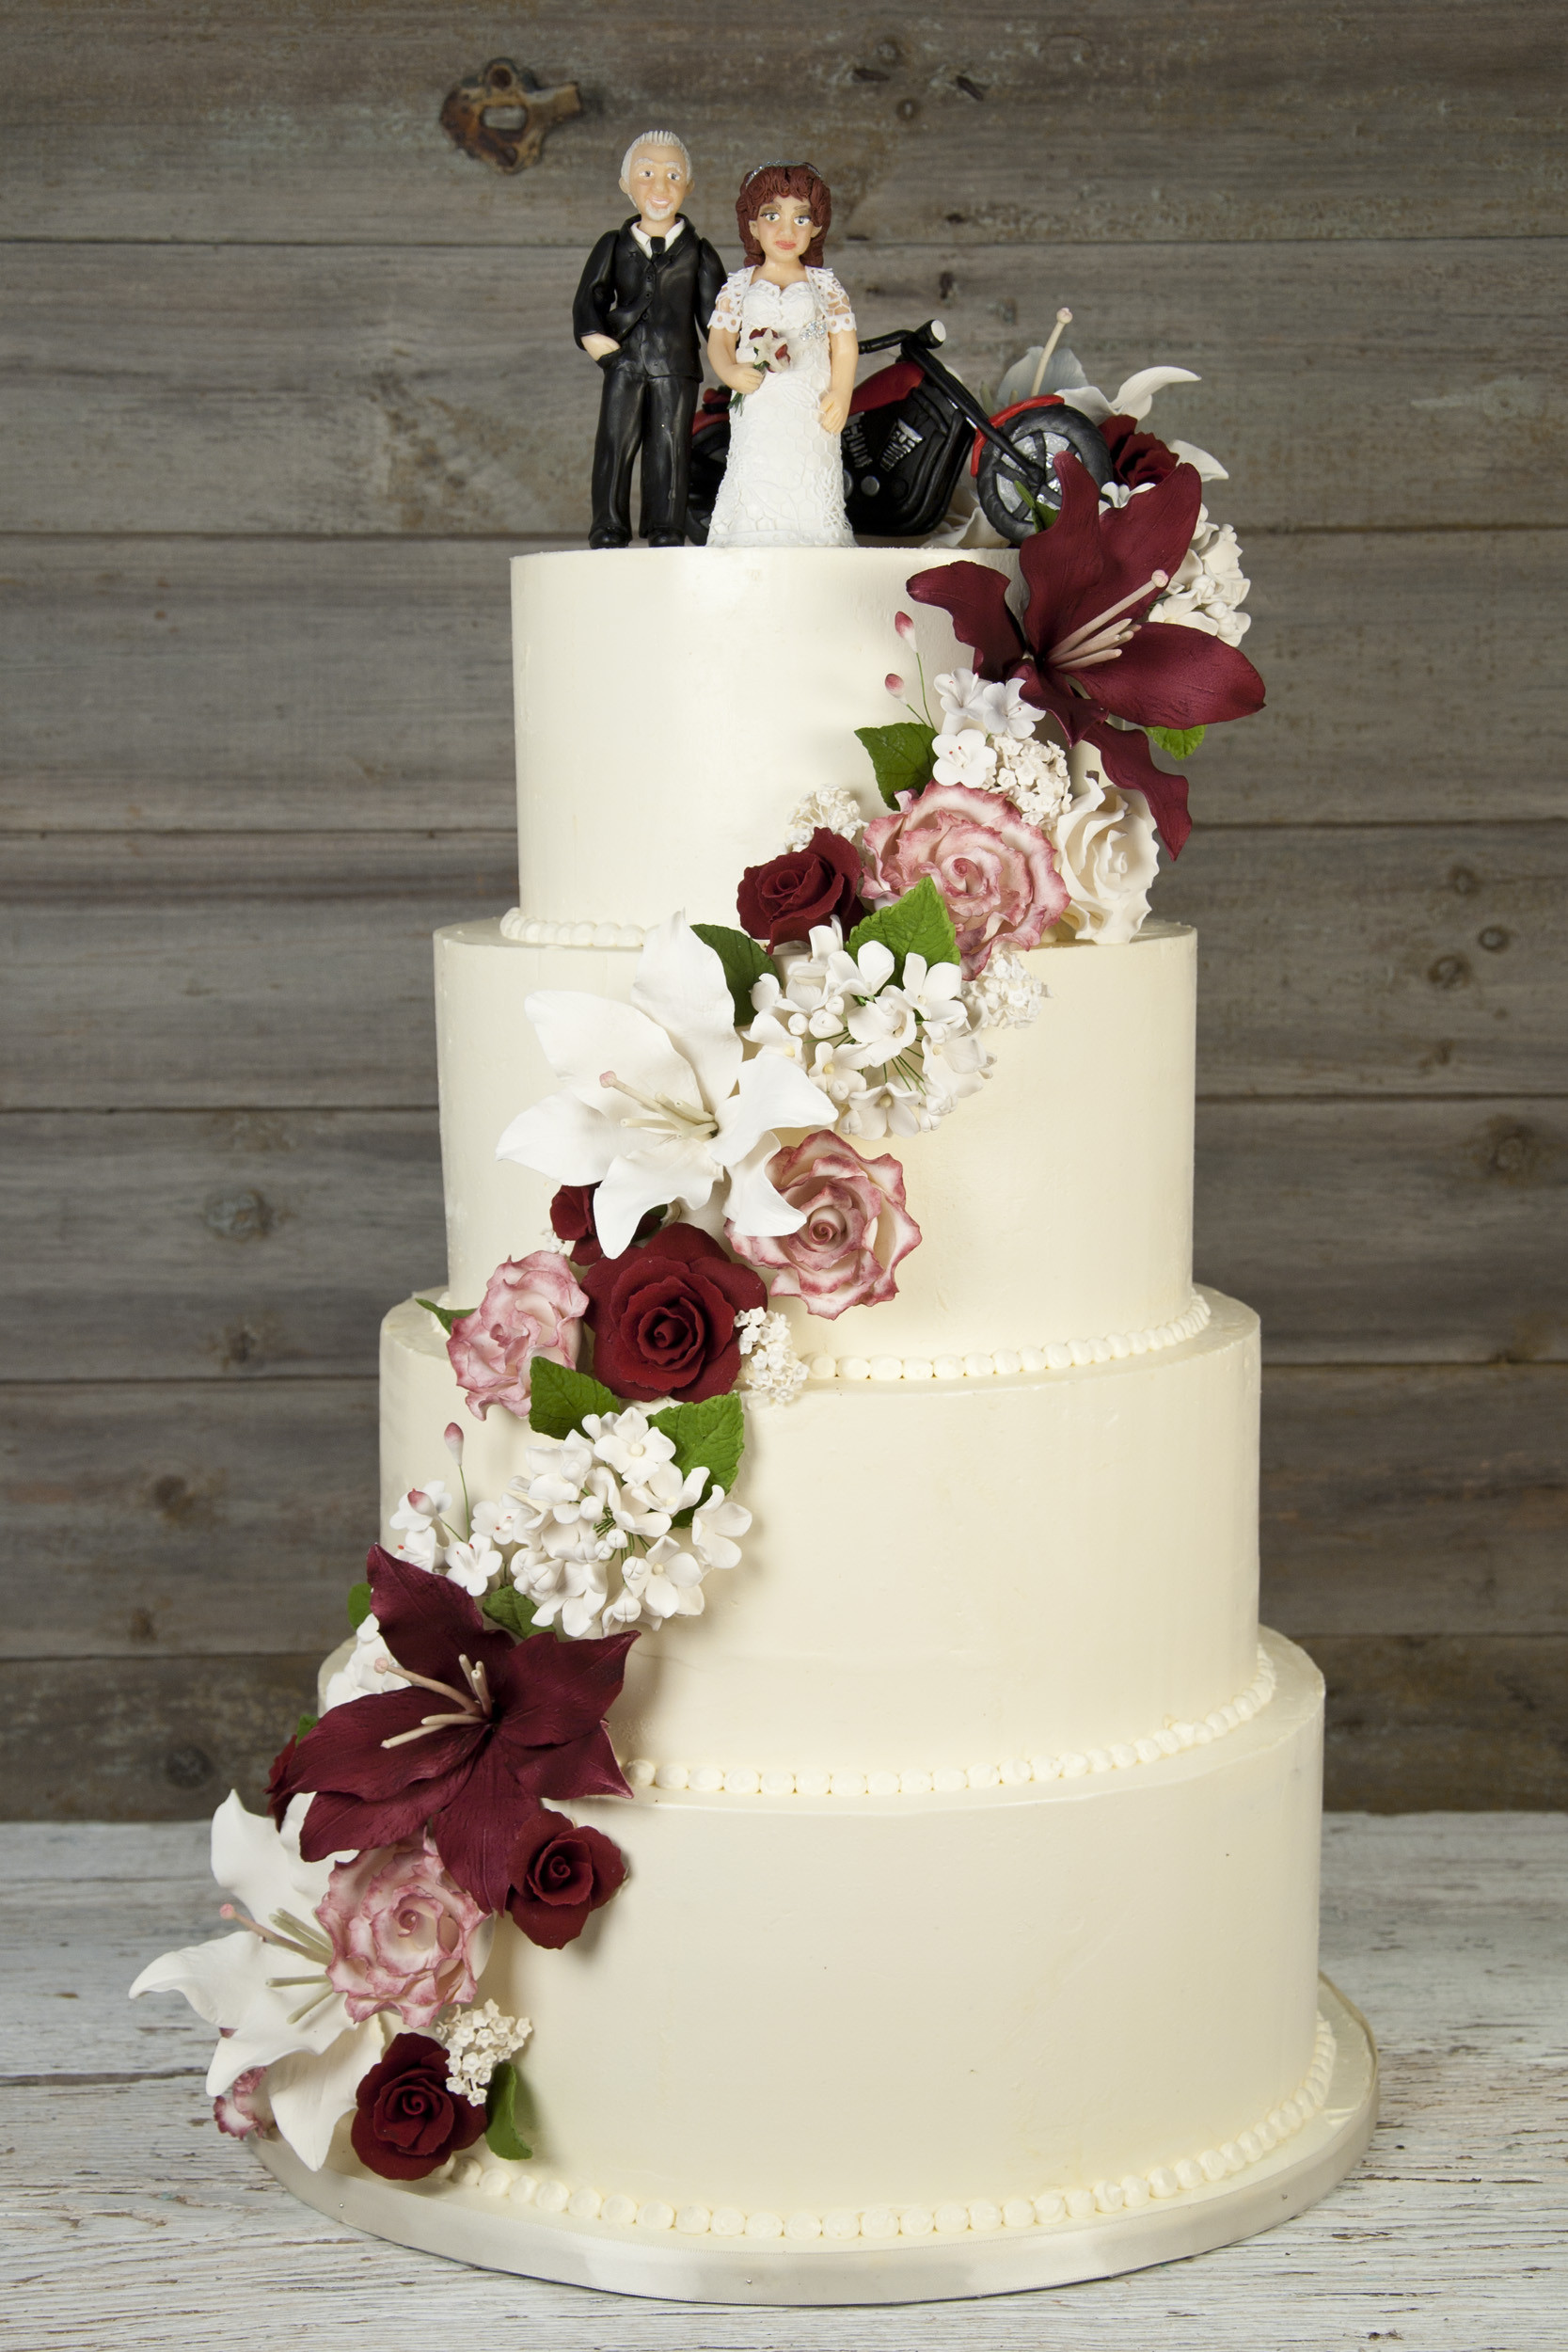 Wedding Cakes Toronto  Custom Wedding Cakes – For the Love of Cake